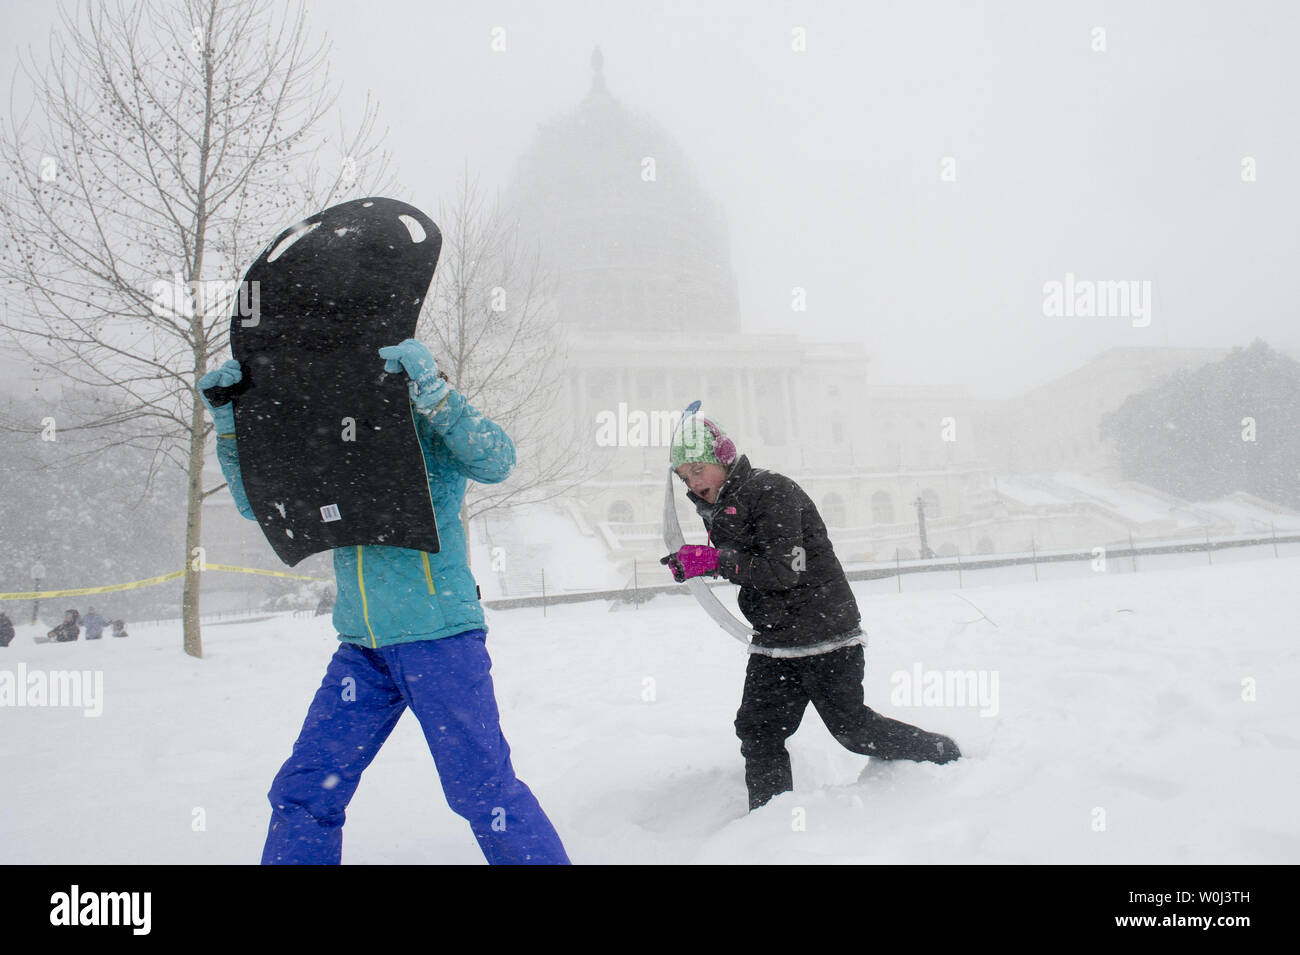 Two children use their sleds to shield themselves from strong winds as they walk near the U.S. Capitol Building in Washington, D.C. on January 23, 2016. A blizzard is hitting much of the East Coast dumping as much as 30 inches of snow and bringing white out conditions with winds topping 50 mph. Photo by Kevin Dietsch/UPI Stock Photo